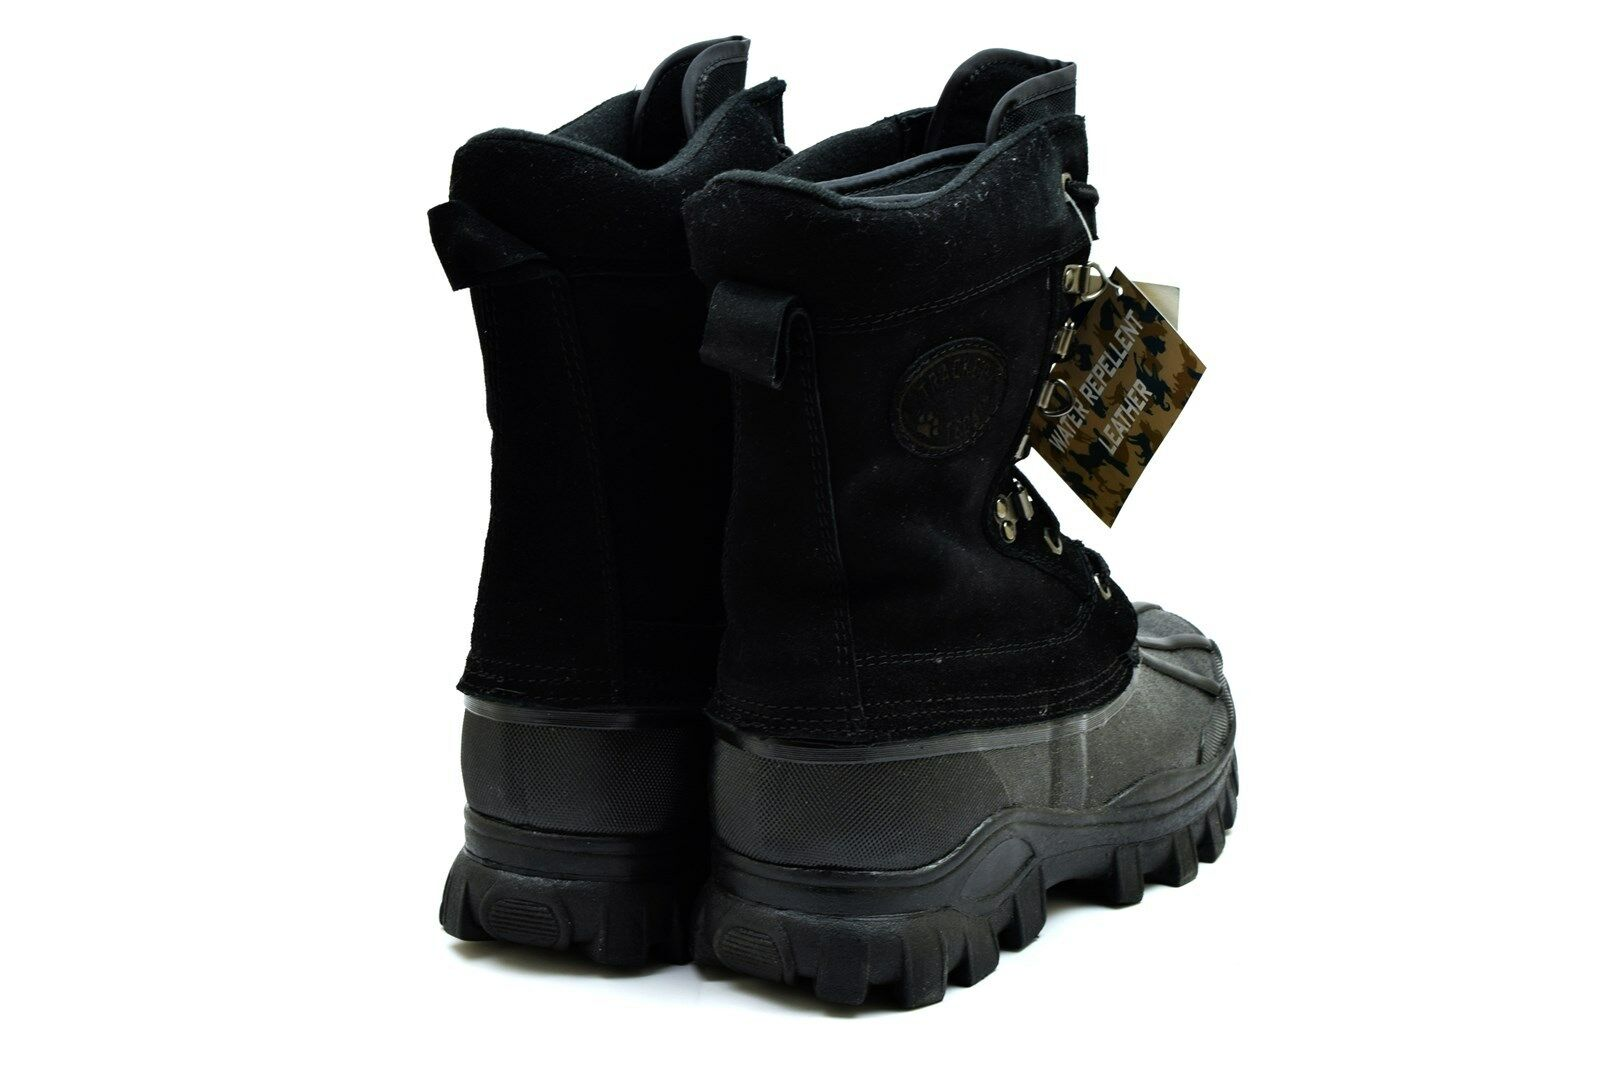 Ladies Tracker Tecs High Performance Hunting Hunting Hunting Outdoor Boots Black Size 8 NEW 038473